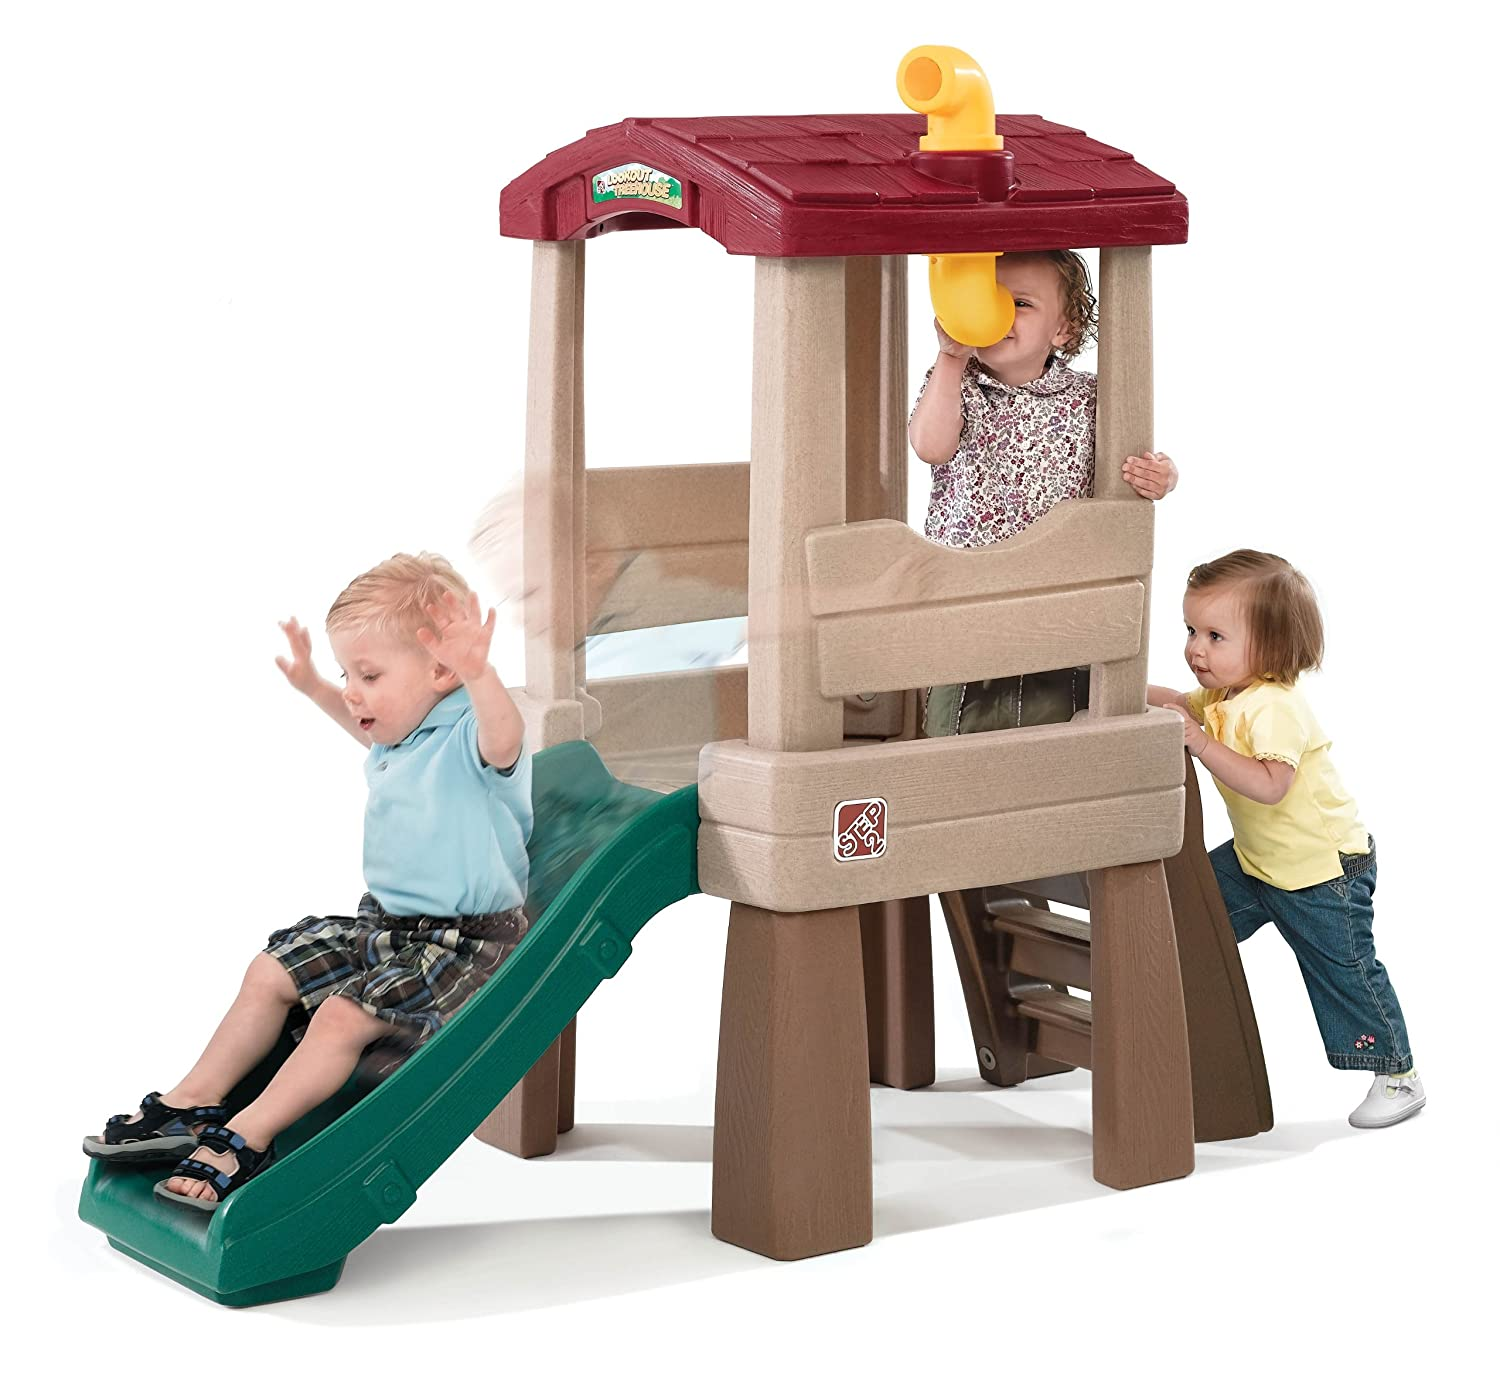 Top 6 Best Kids Outdoor Playhouse Reviews in 2020 3